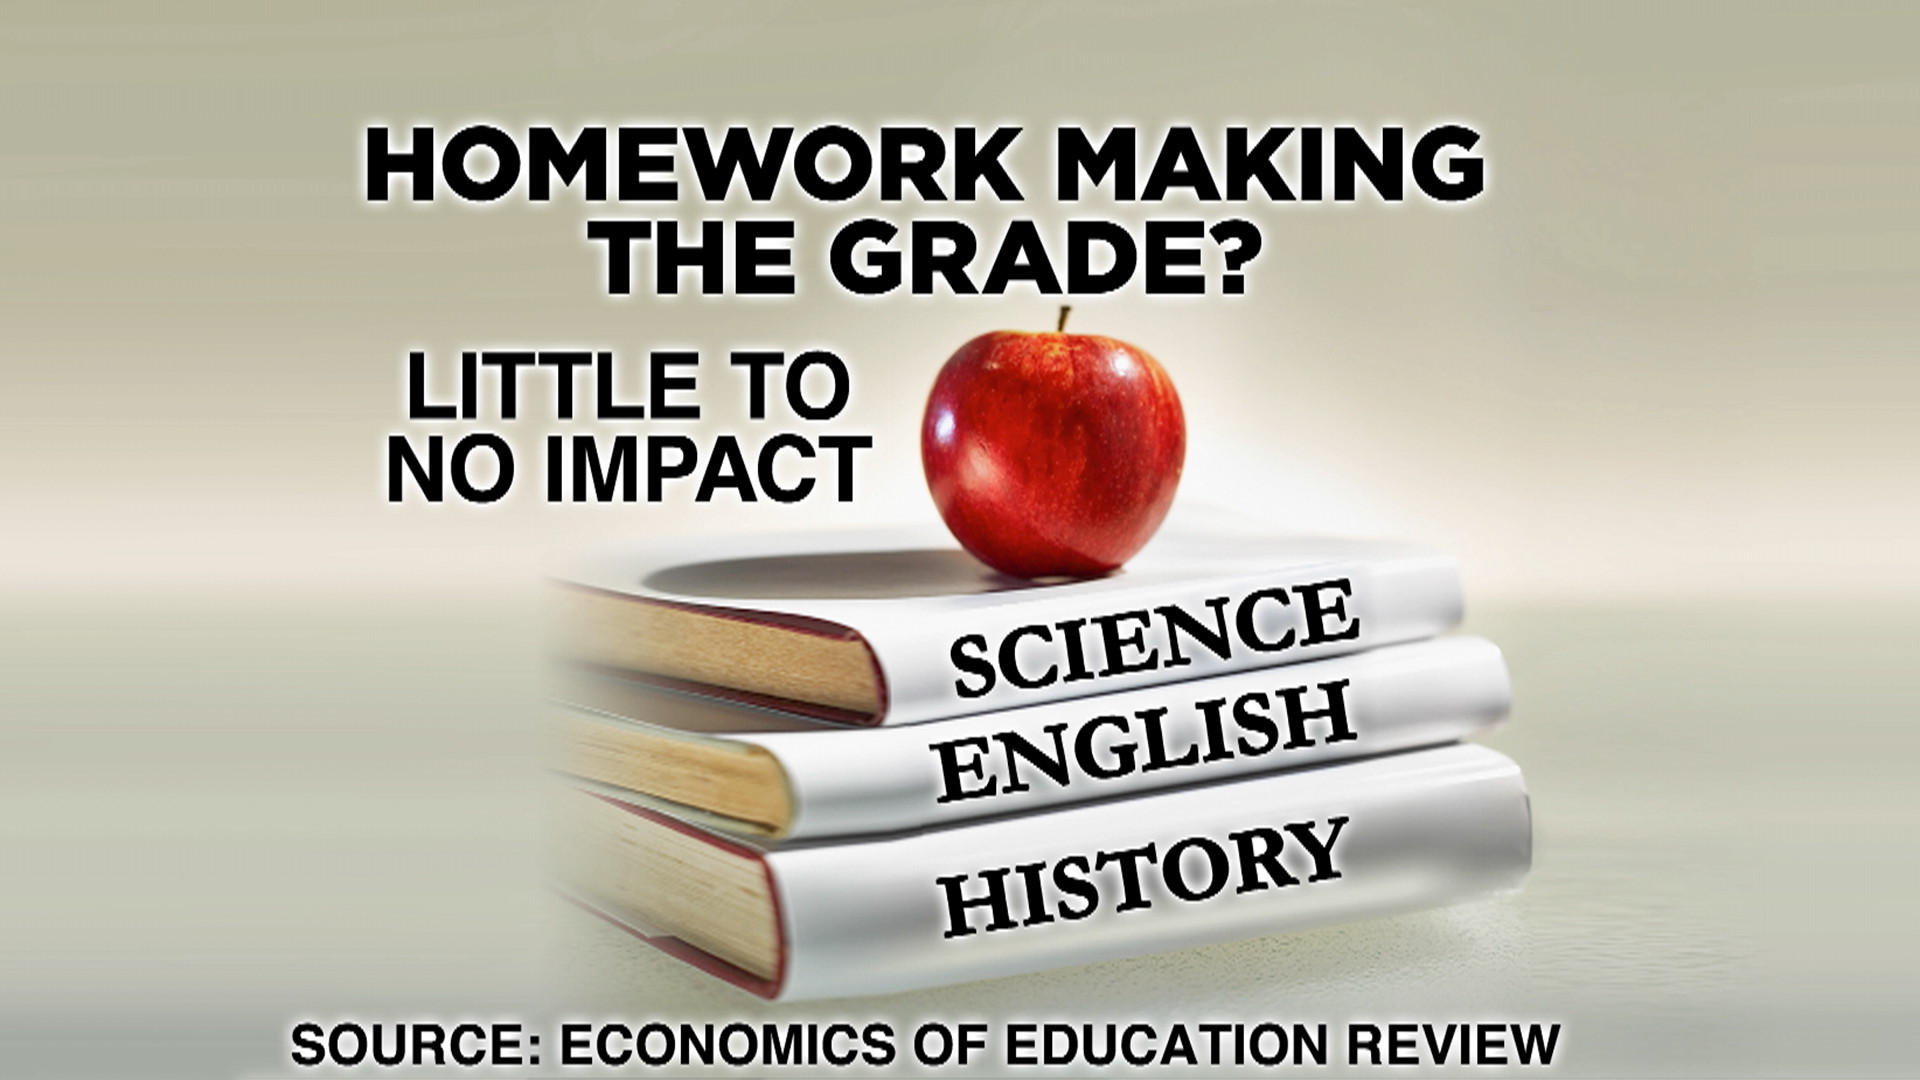 Is homework harmful or helpful research paper